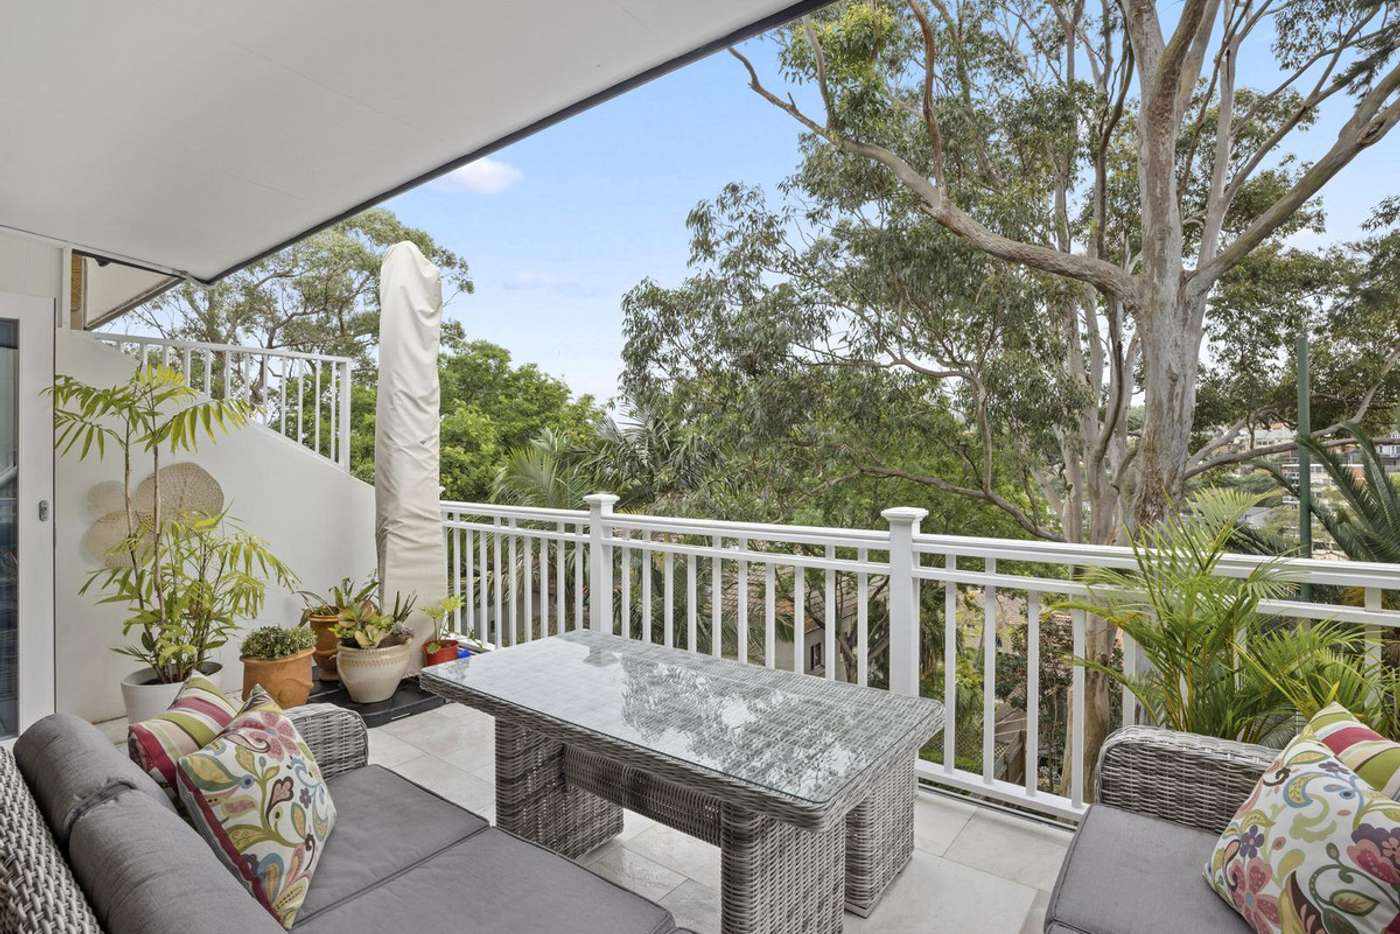 Fifth view of Homely house listing, 24 Somerset Street, Mosman NSW 2088